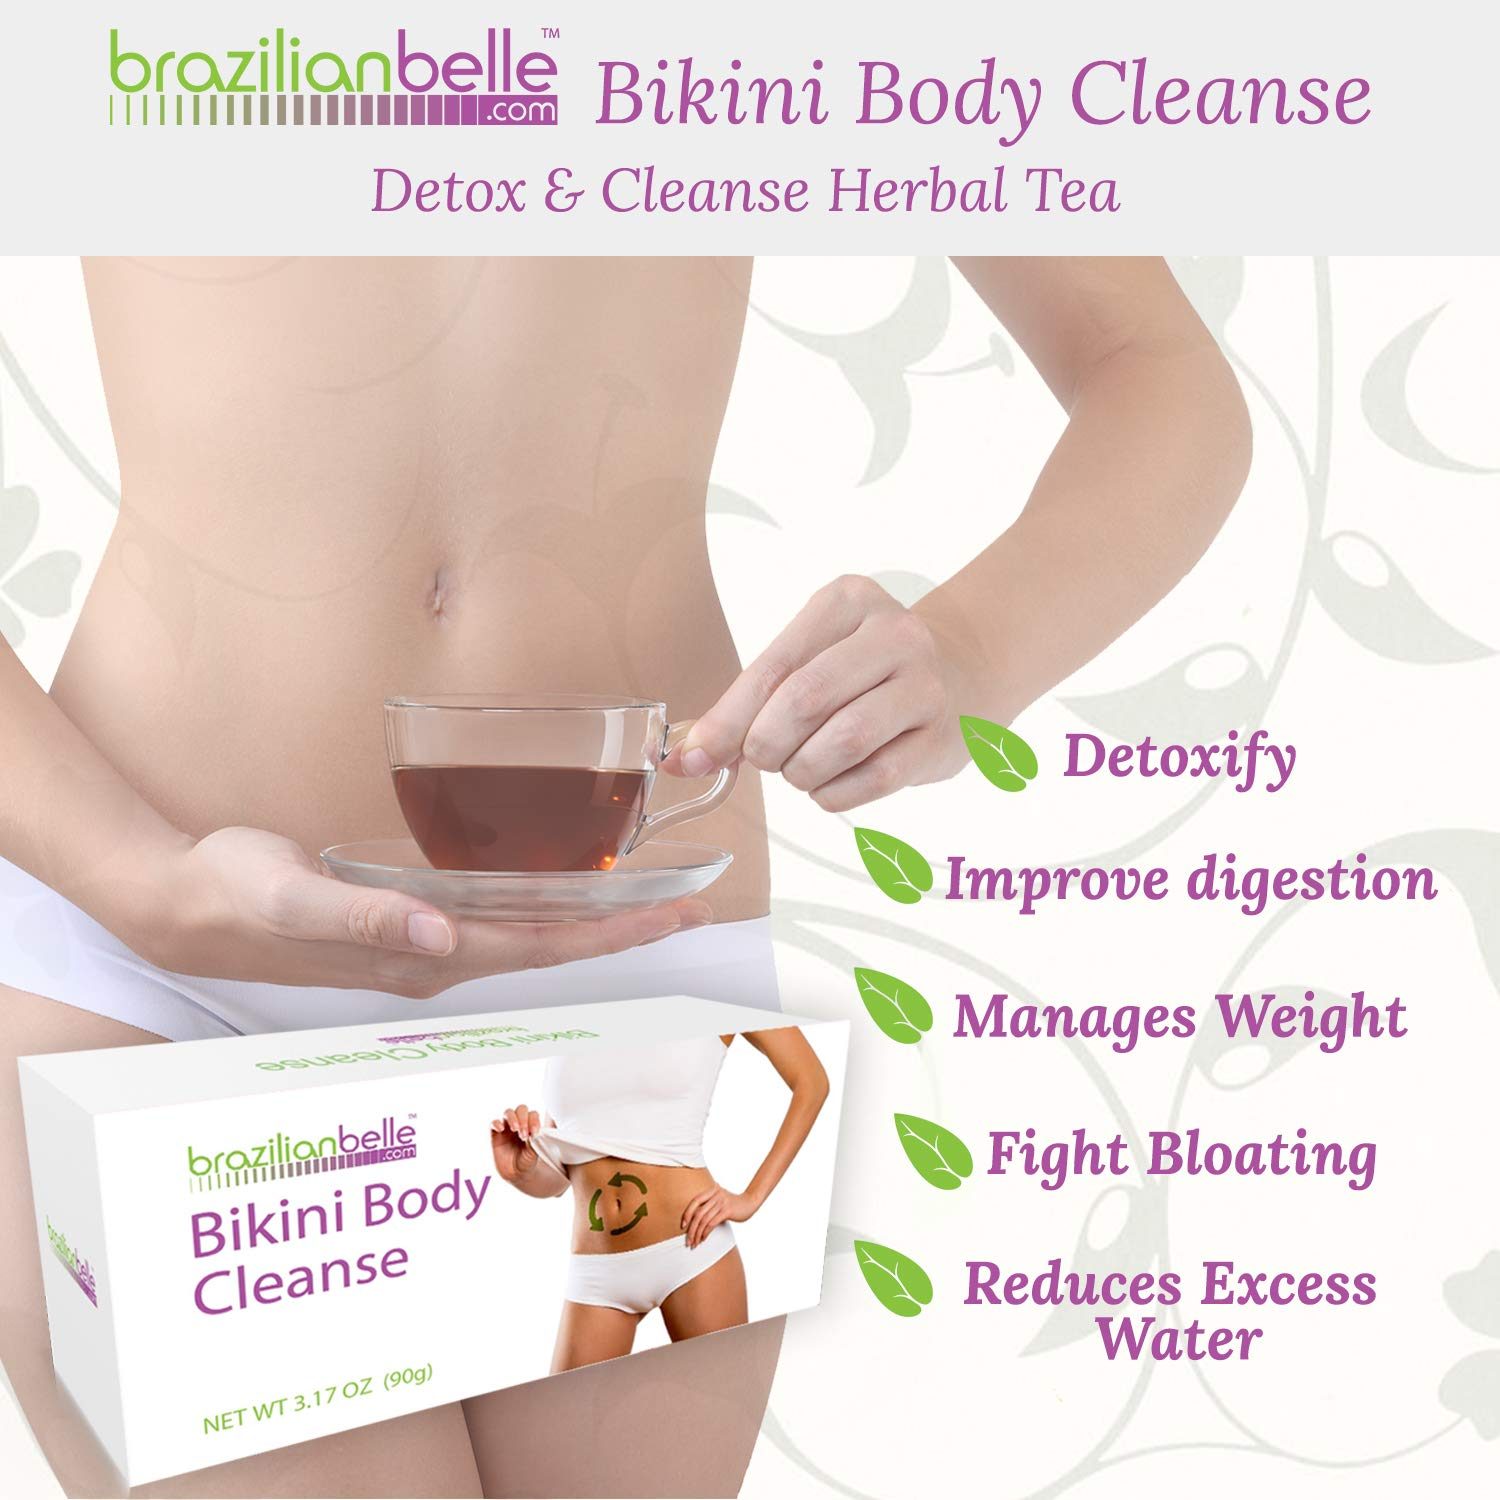 Bikini body detox opinion